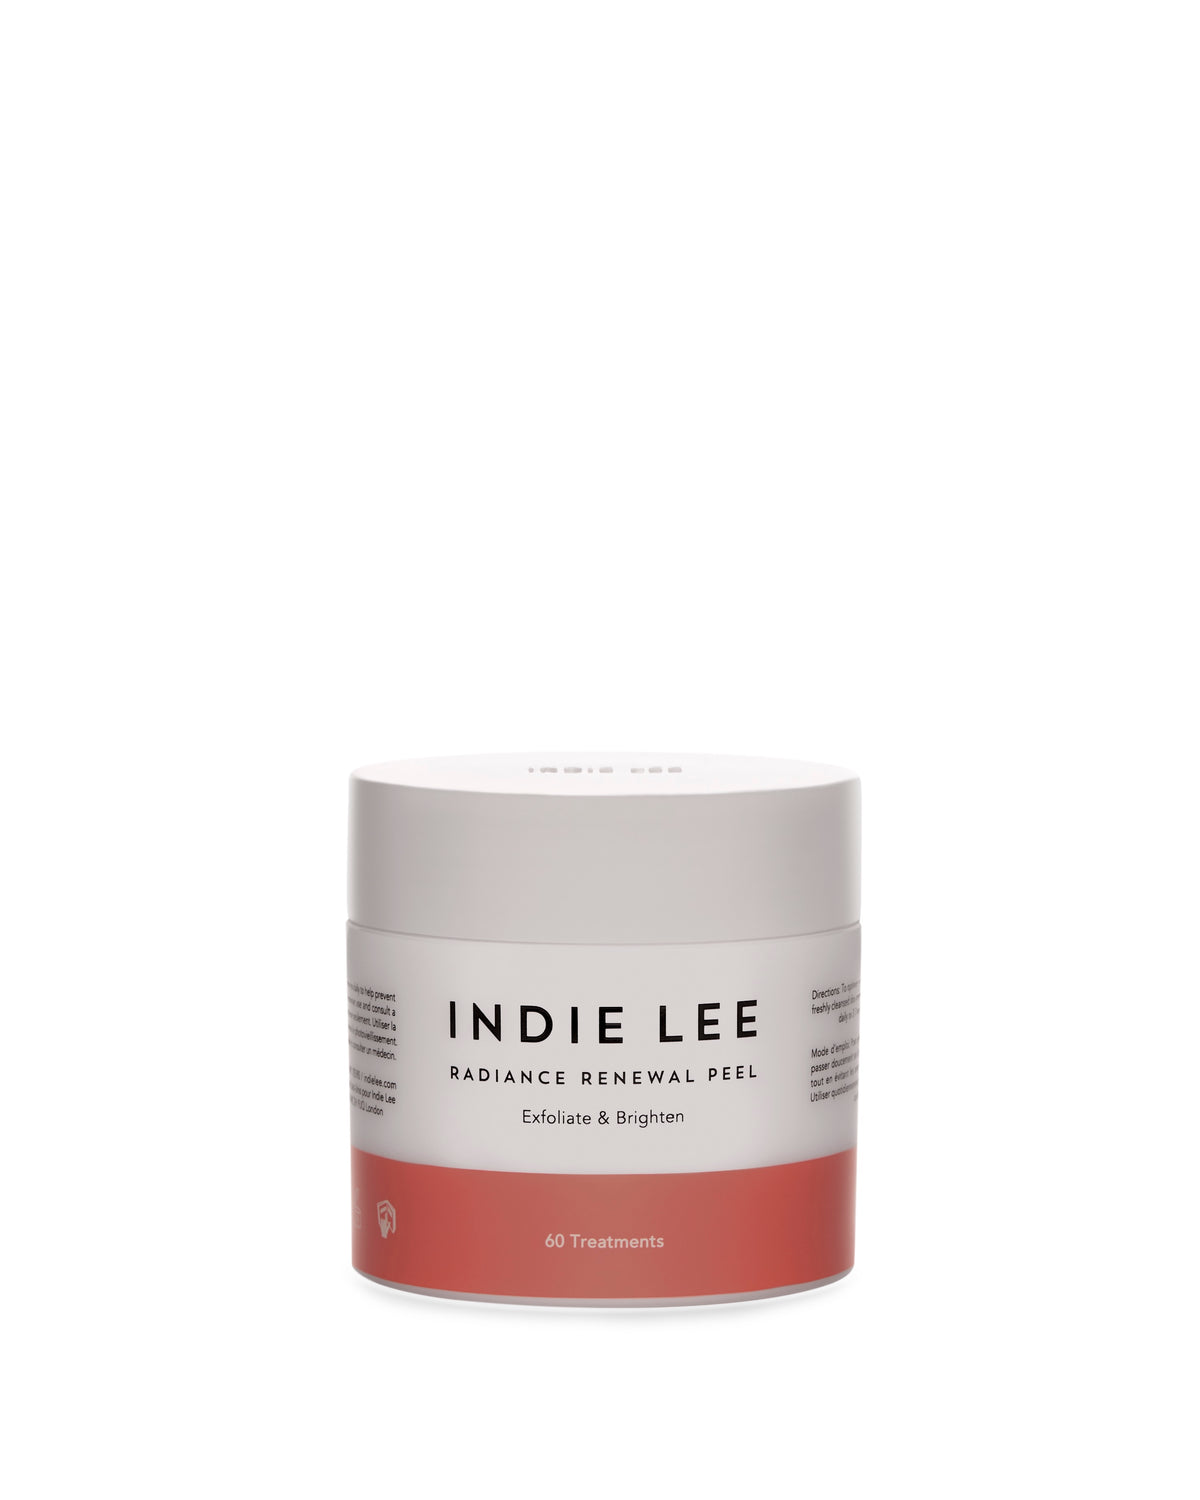 Indie Lee Radiance Renewal Peel - AILLEA